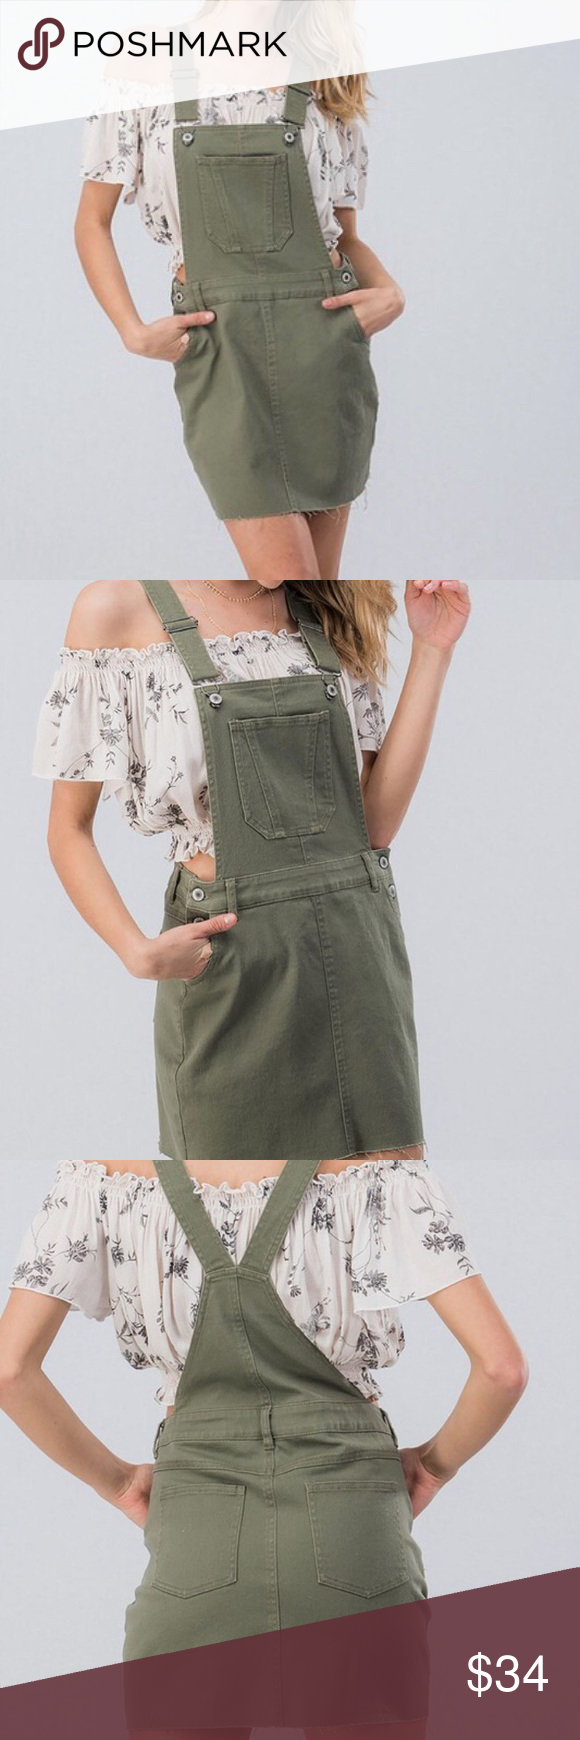 Olive Green Overall Dress Clothes Design Boutique Dresses Overall Dress [ 1740 x 580 Pixel ]